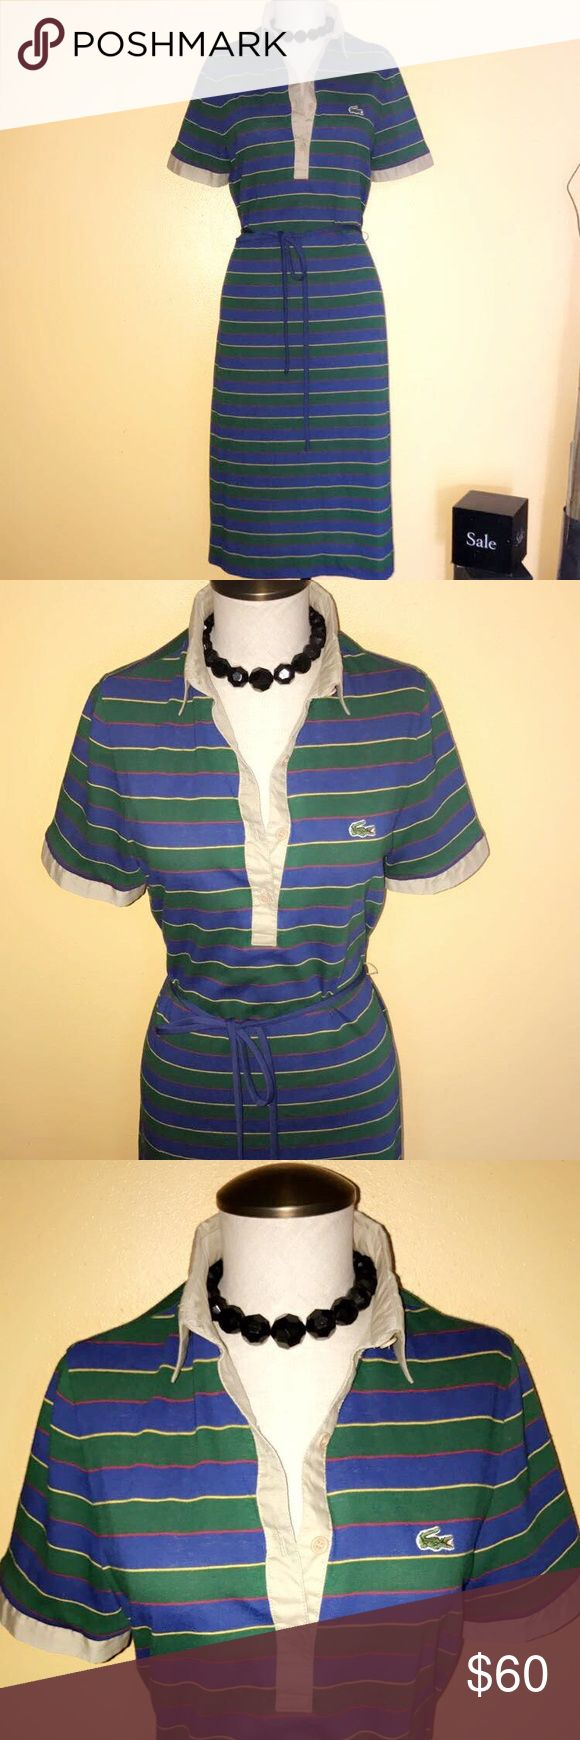 David crystal Lacoste blue green and kaki dress Lacoste green/blue/kaki stripe beautiful dress very comfortable size 14 runs small Lacoste Dresses Maxi